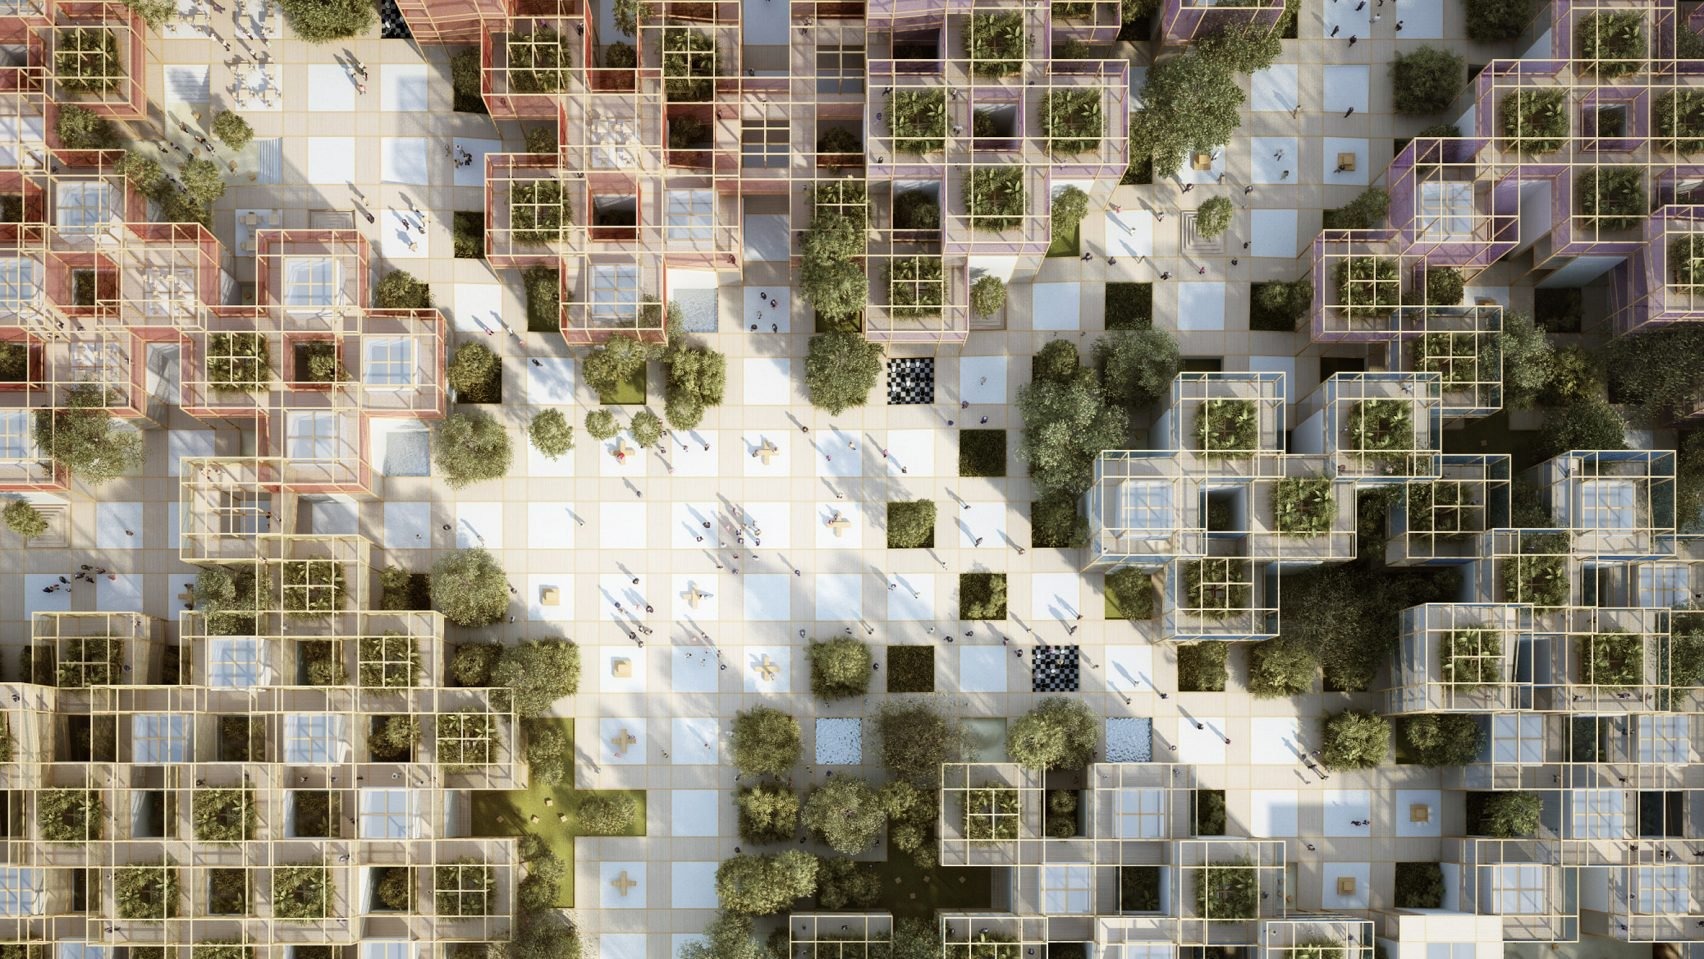 An overview of a grid pavilion with trees